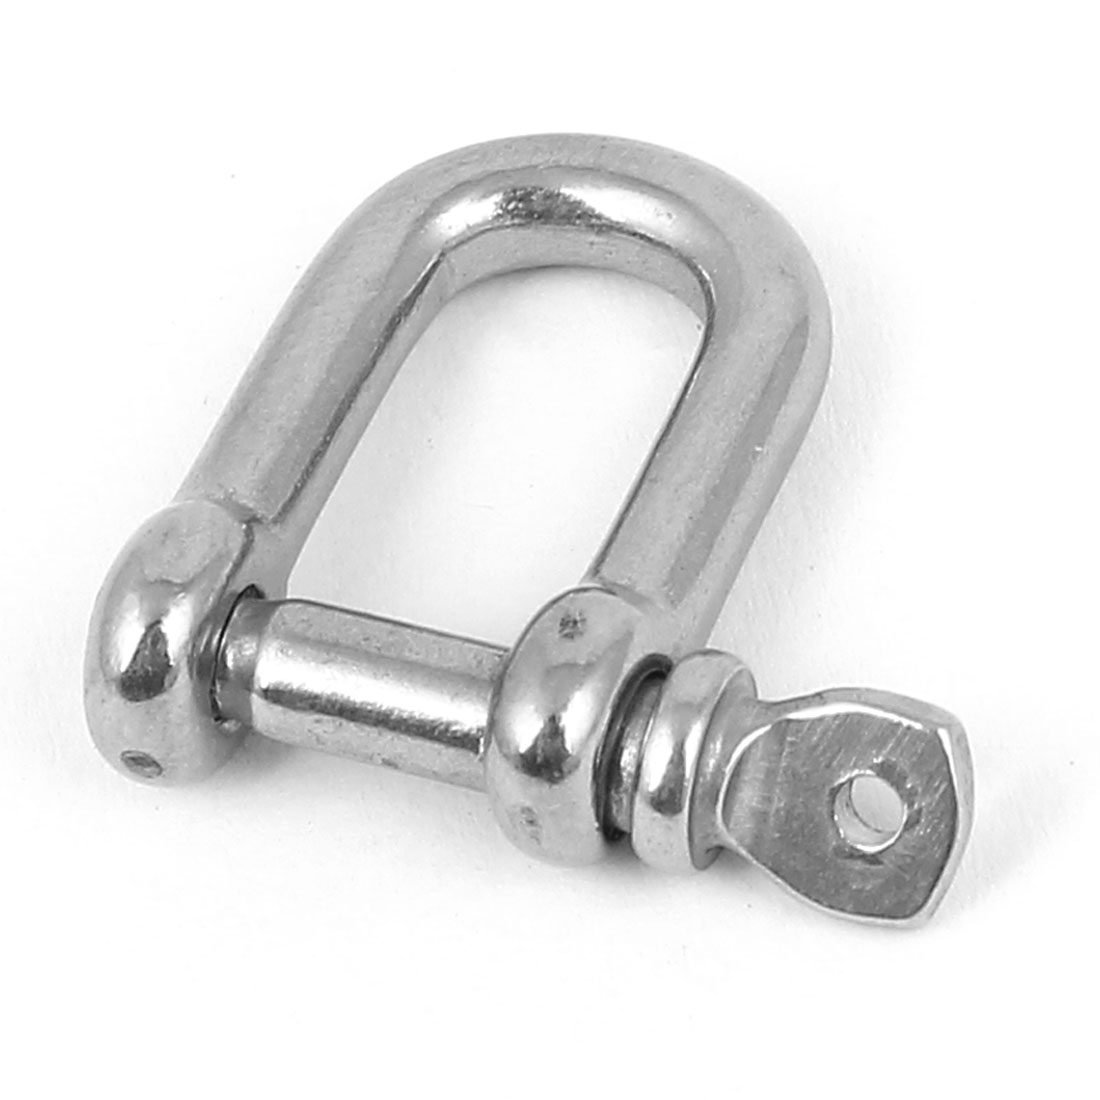 Ships Connecting Link Fitting Wire Rope Bow D Shackle 5mm Male Thread